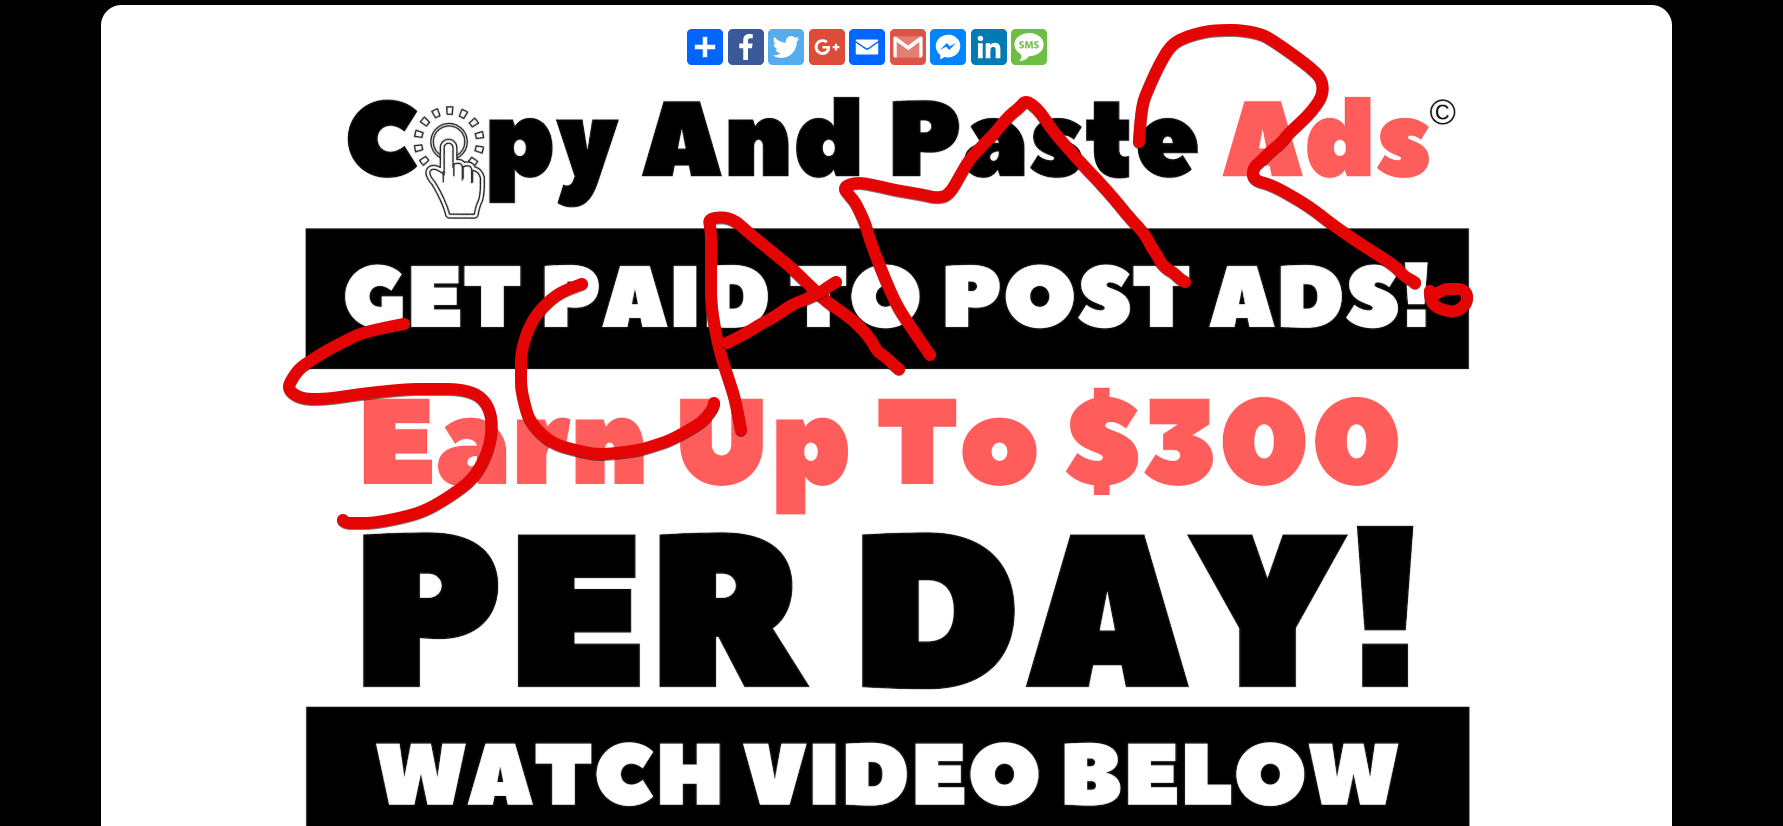 Copy And Paste Ads Website